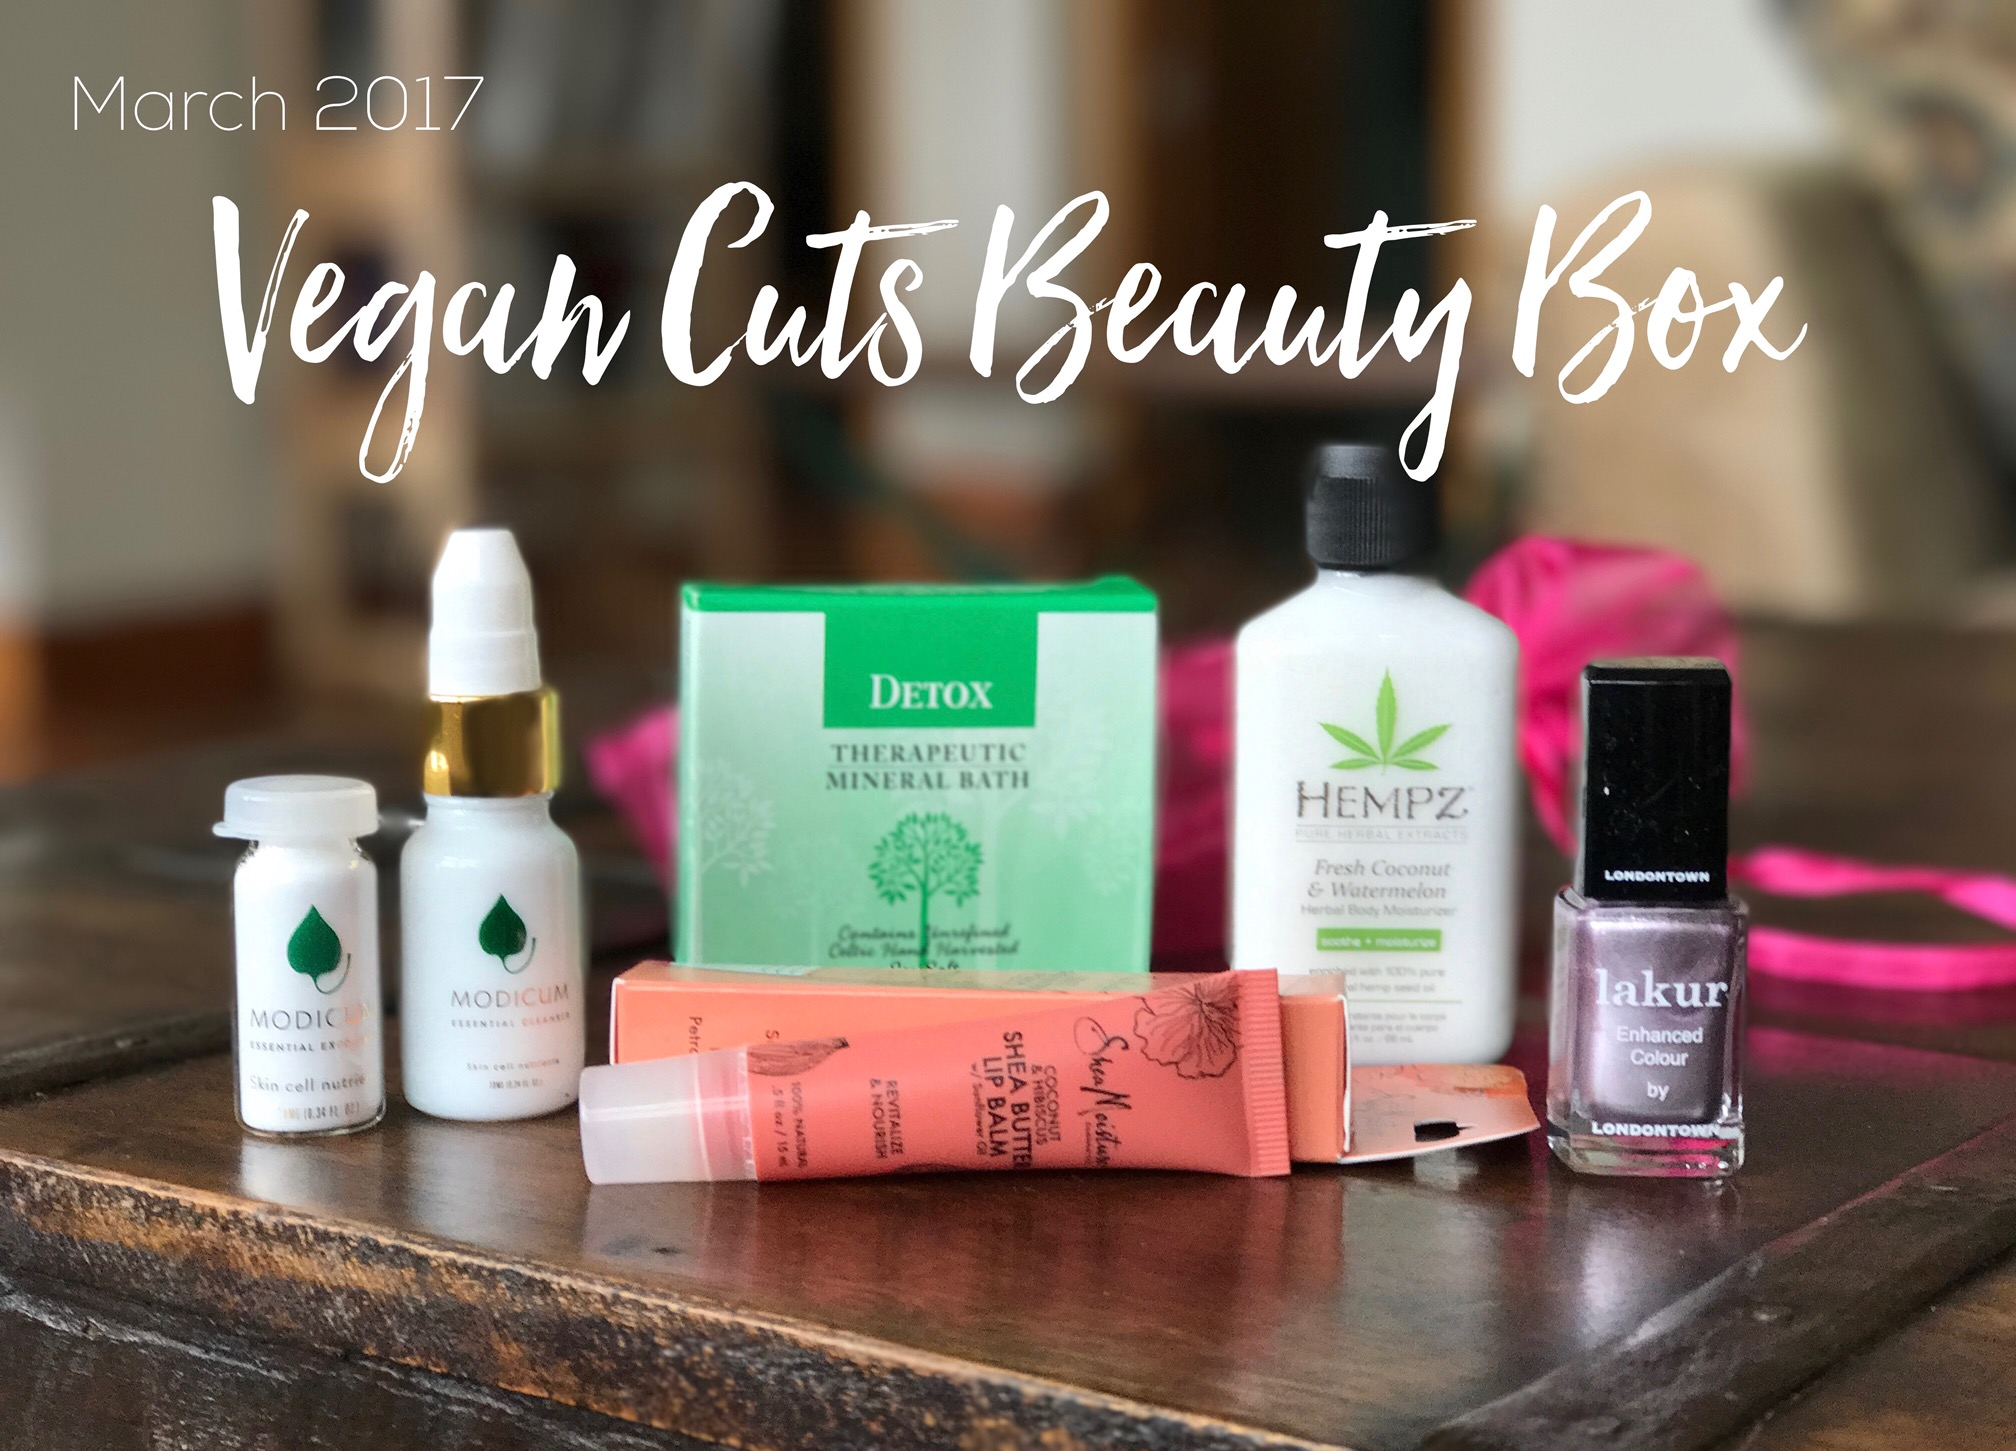 March 2017 Vegan Cuts Beauty Box